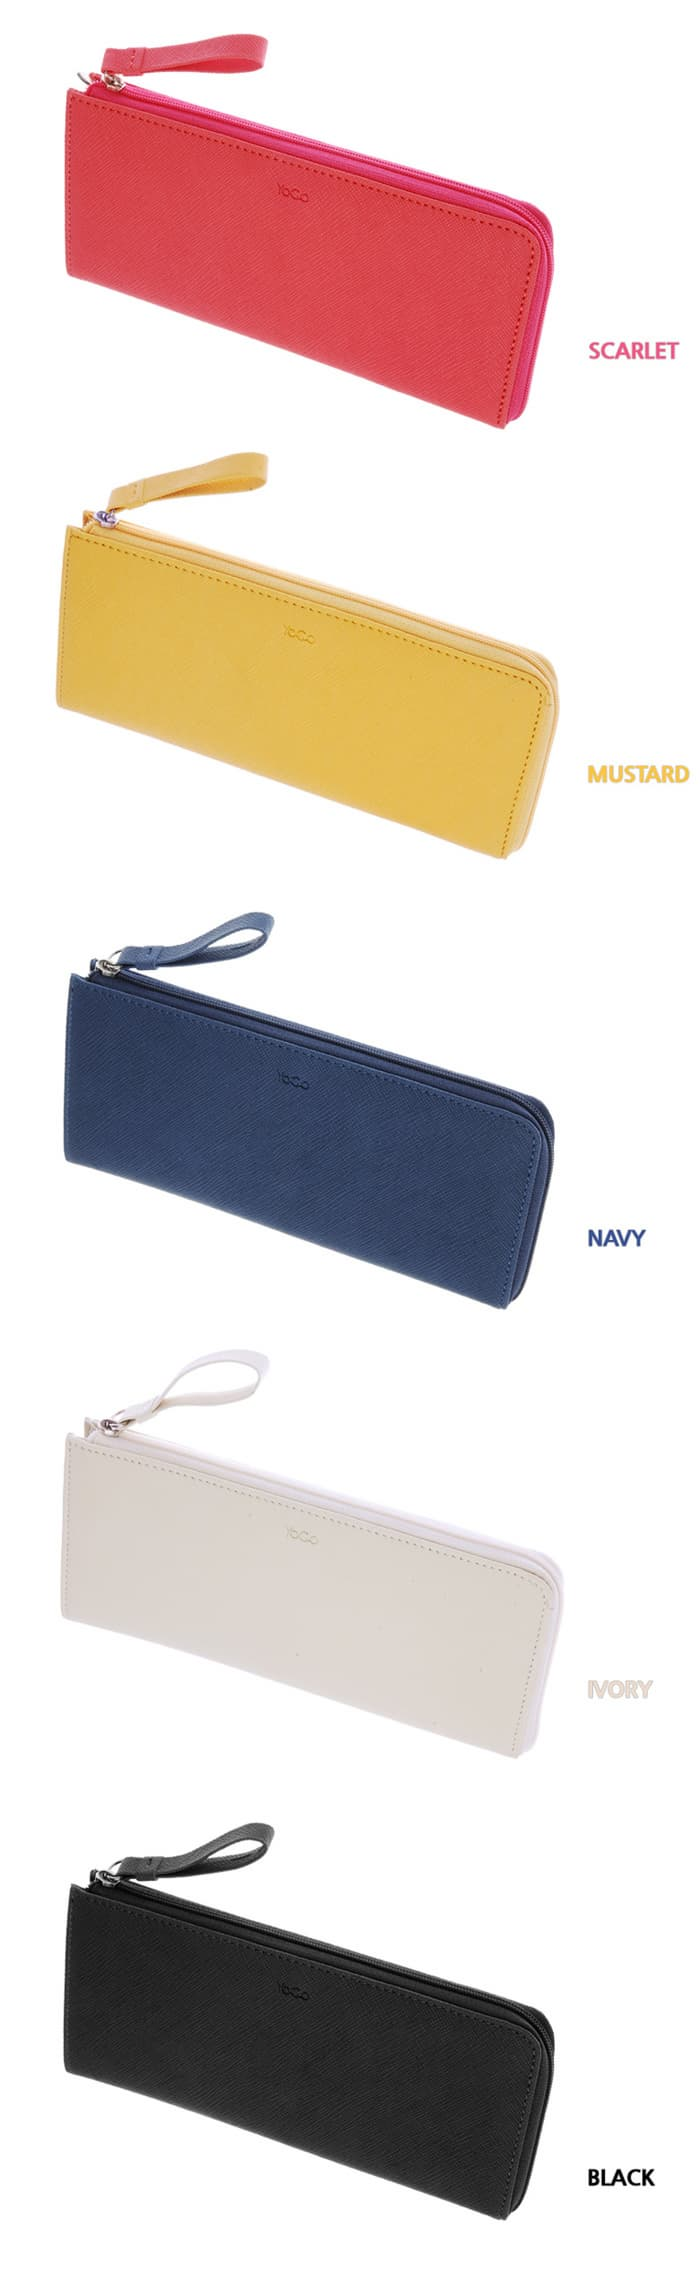 YOGO Zipper Wallet Large -NYG 06-